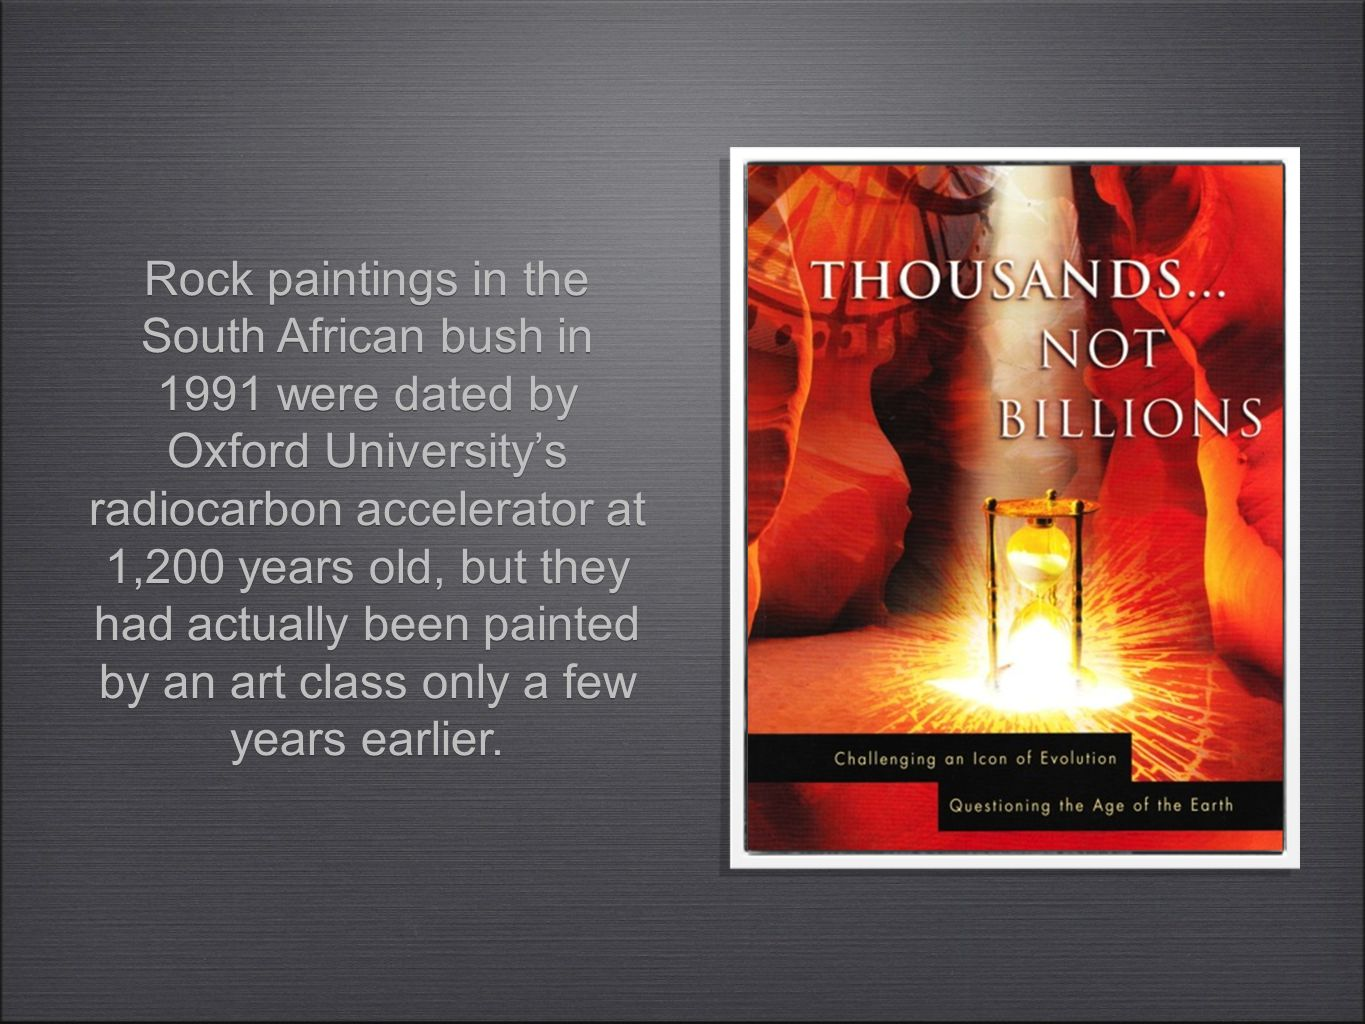 Rock paintings in the South African bush in 1991 were dated by Oxford University's radiocarbon accelerator at 1,200 years old, but they had actually been painted by an art class only a few years earlier.